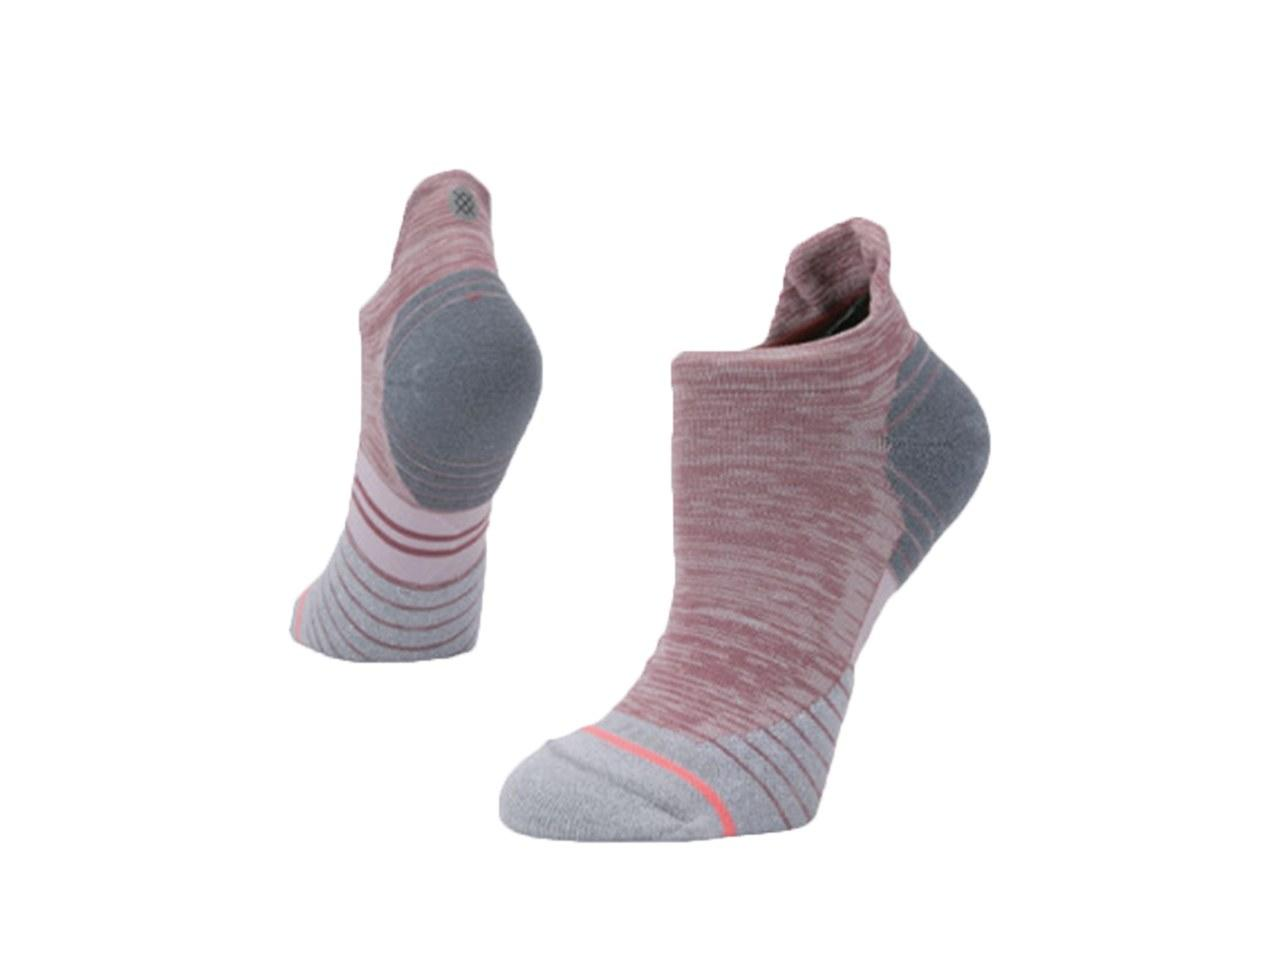 """<p>""""These socks are the right thickness for me, and I love the ankle tab in the back so I never have to worry about them disappearing and riding down into my shoe.""""<br> —<a rel=""""nofollow"""" href=""""https://www.instagram.com/foodosaurusrex/"""">Danielle Heffernan</a>, runner in Jersey City, New Jersey</p> <p>""""I love the colors and how comfortable these socks are. I wear them for all of my workouts!""""<br> —<a rel=""""nofollow"""" href=""""https://www.oiselle.com/blog/author/allie-kieffer"""" rel=""""nofollow"""">Allie Kieffer</a>, professional marathoner</p> <p>""""I love that these socks have a great true-to-size fit so that I don't get blisters. They always feel great in the run, and hold up in rain or snow.""""<br> —<a rel=""""nofollow"""" href=""""https://www.nazelite.com/athletes/kellyn-taylor/"""">Kellyn Taylor</a>, professional marathoner</p> <p><strong>Buy them:</strong> $14, <a rel=""""nofollow"""" href=""""https://shop.nordstrom.com/s/stance-distance-tab-running-socks/4821664"""" rel=""""nofollow"""">nordstrom.com</a></p>"""